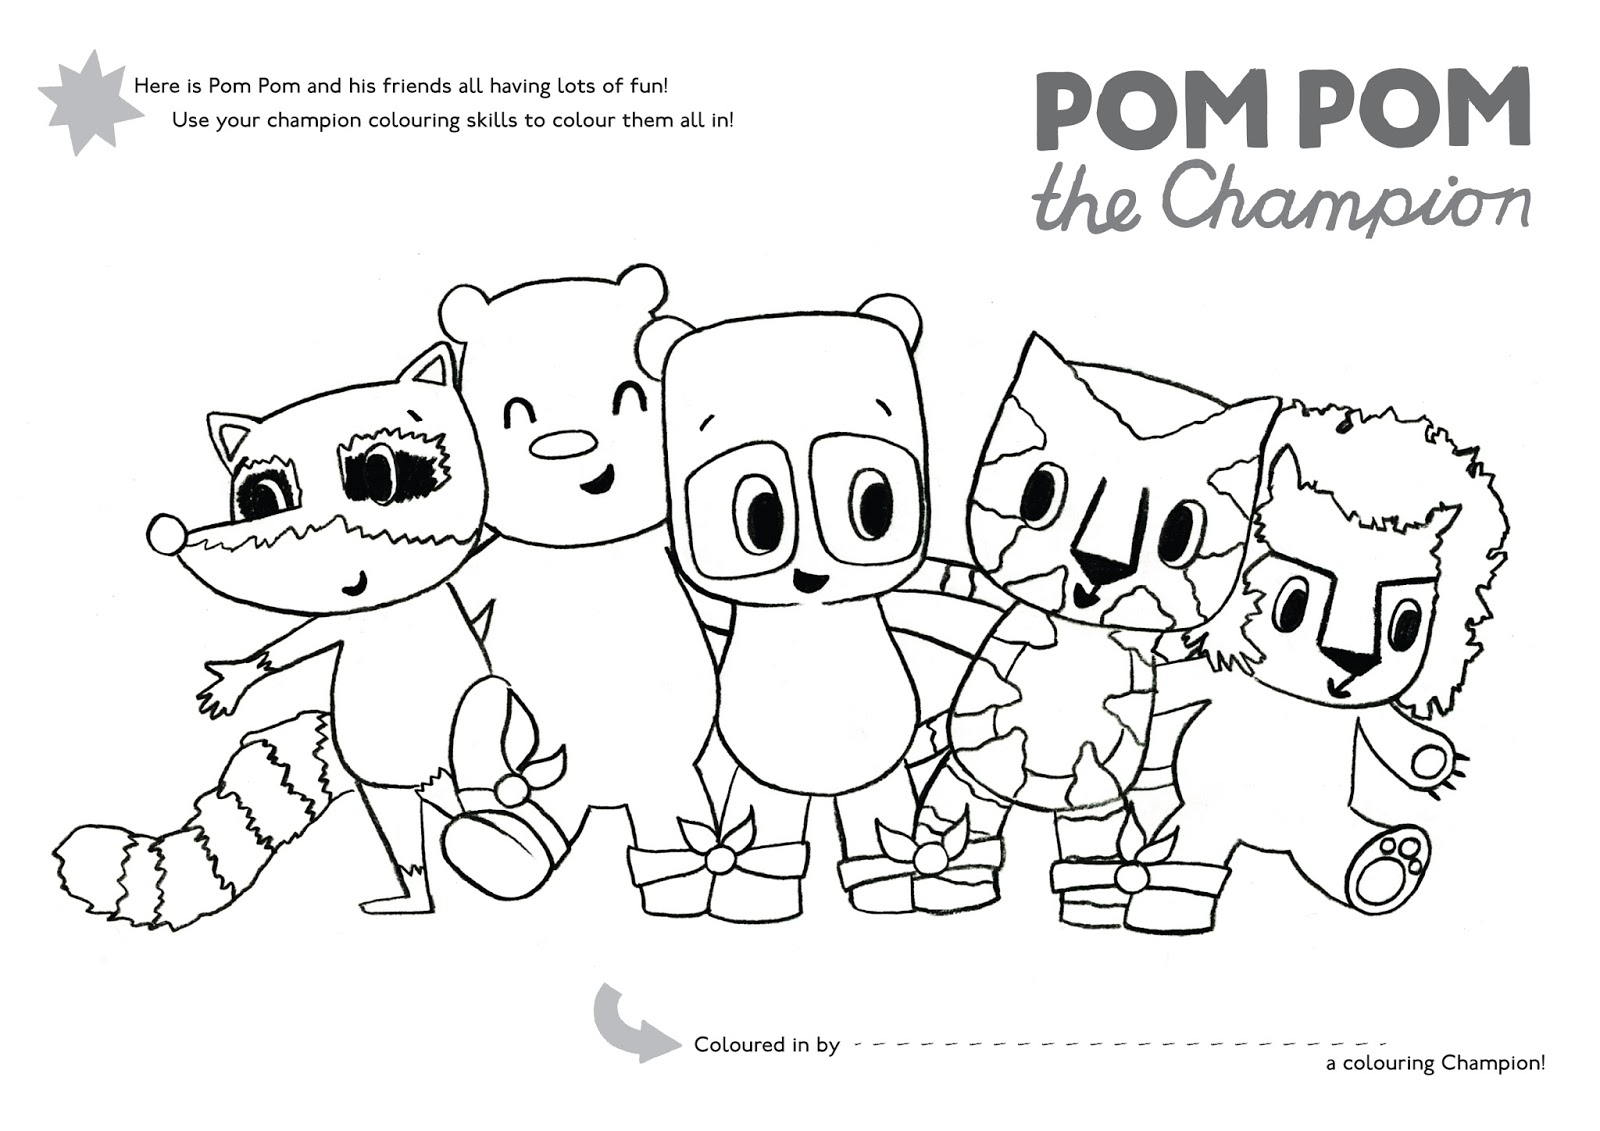 pom pom the champion by sophy henn picture puffin